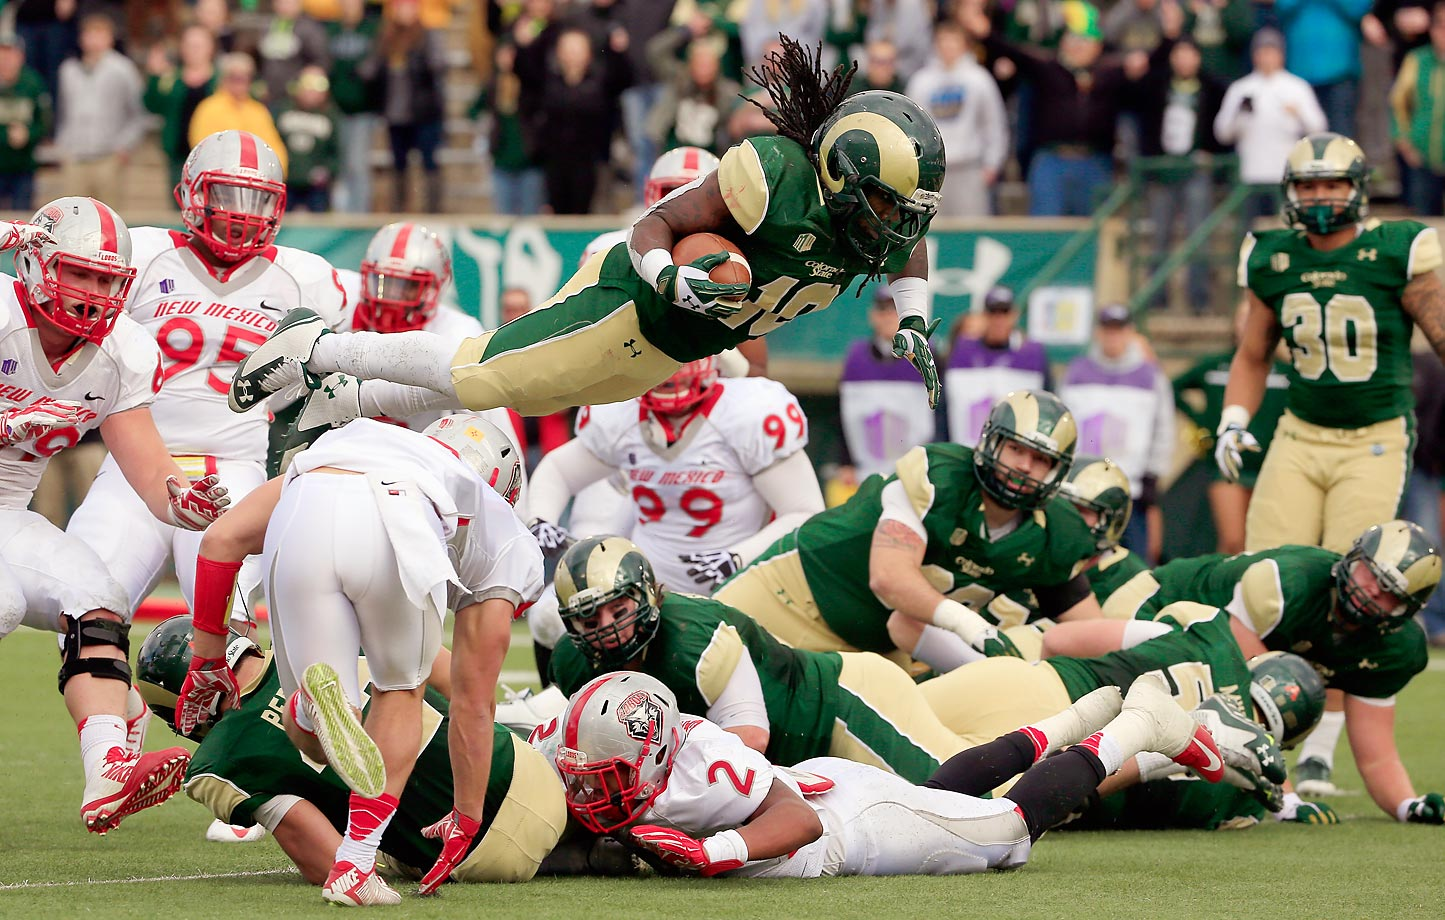 Dee Hart of the Colorado State Rams dives into the endzone on fourth down for a touchdown to take a 14-0 lead against the New Mexico Lobos. Hart had 272 yards total offense and six touchdowns as Colorado State defeated New Mexico 58-20.